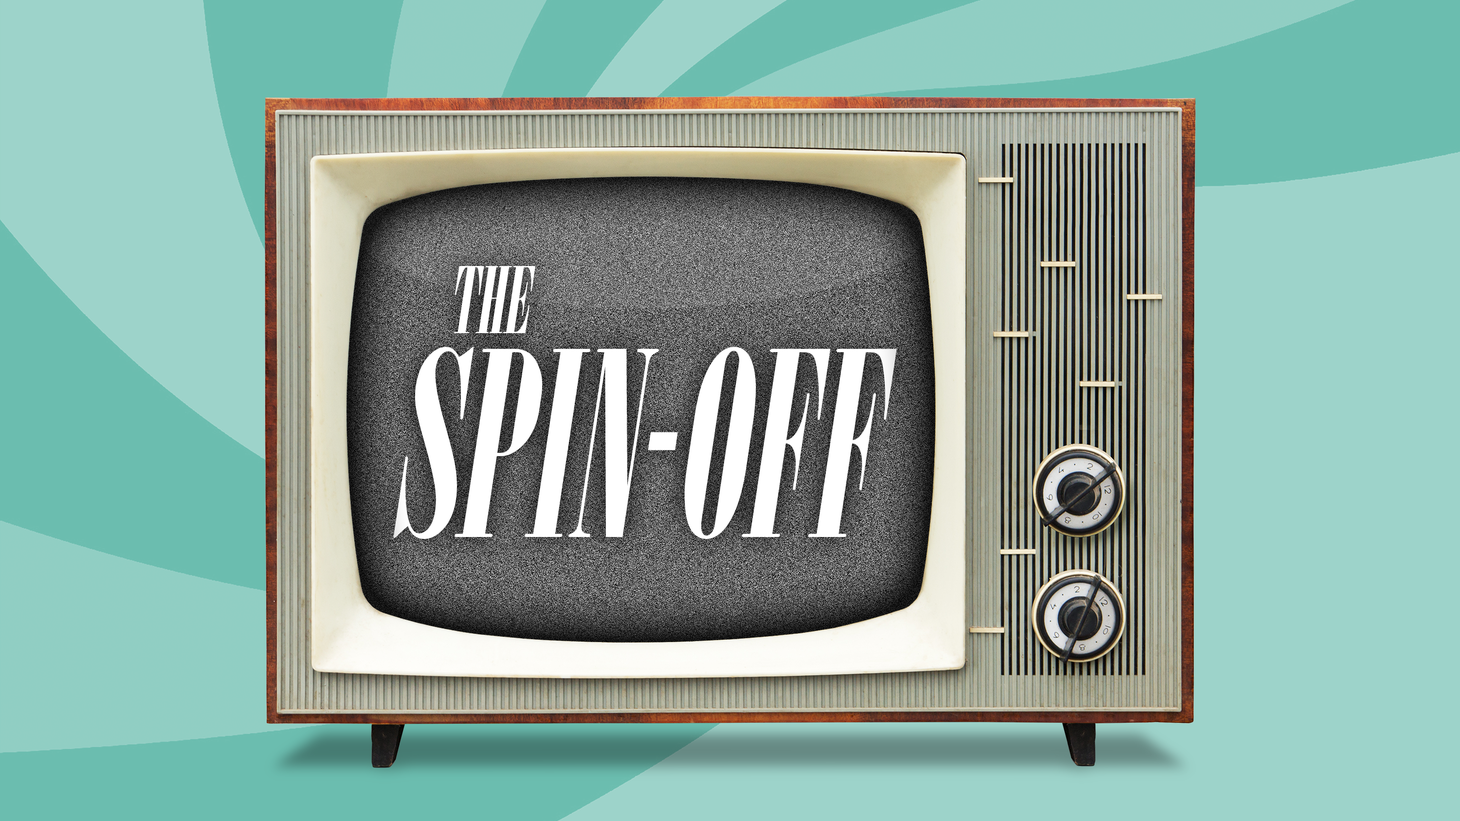 The Spin-off crew steps away from the 2016 Television Critics Association gathering to talk about prevailing themes at this year's TCA and look ahead to what the TV landscape may look like in the coming months.